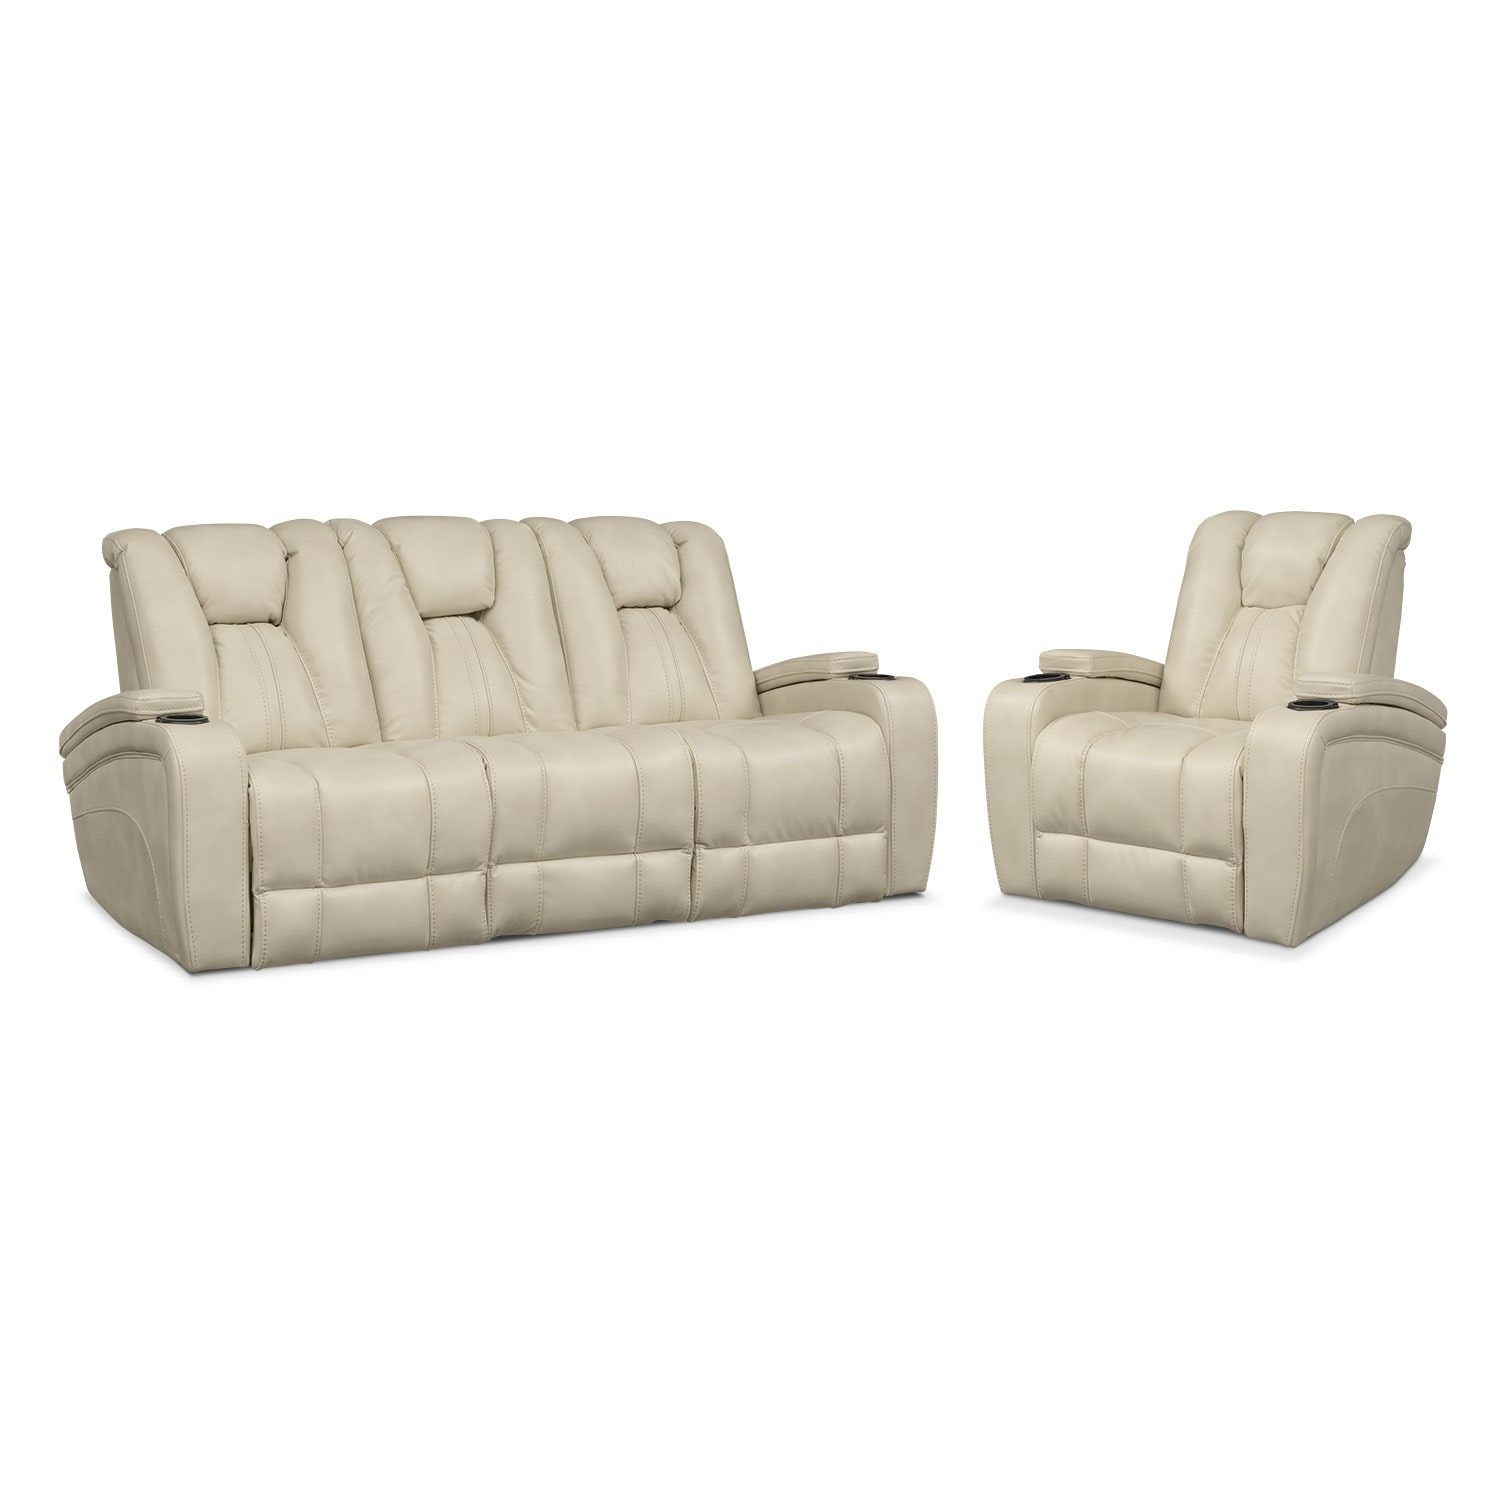 Pulsar Dual Power Reclining Sofa and Power Recliner Set - Cream  sc 1 st  Value City Furniture & Pulsar Dual Power Reclining Sofa - Black | Value City Furniture islam-shia.org